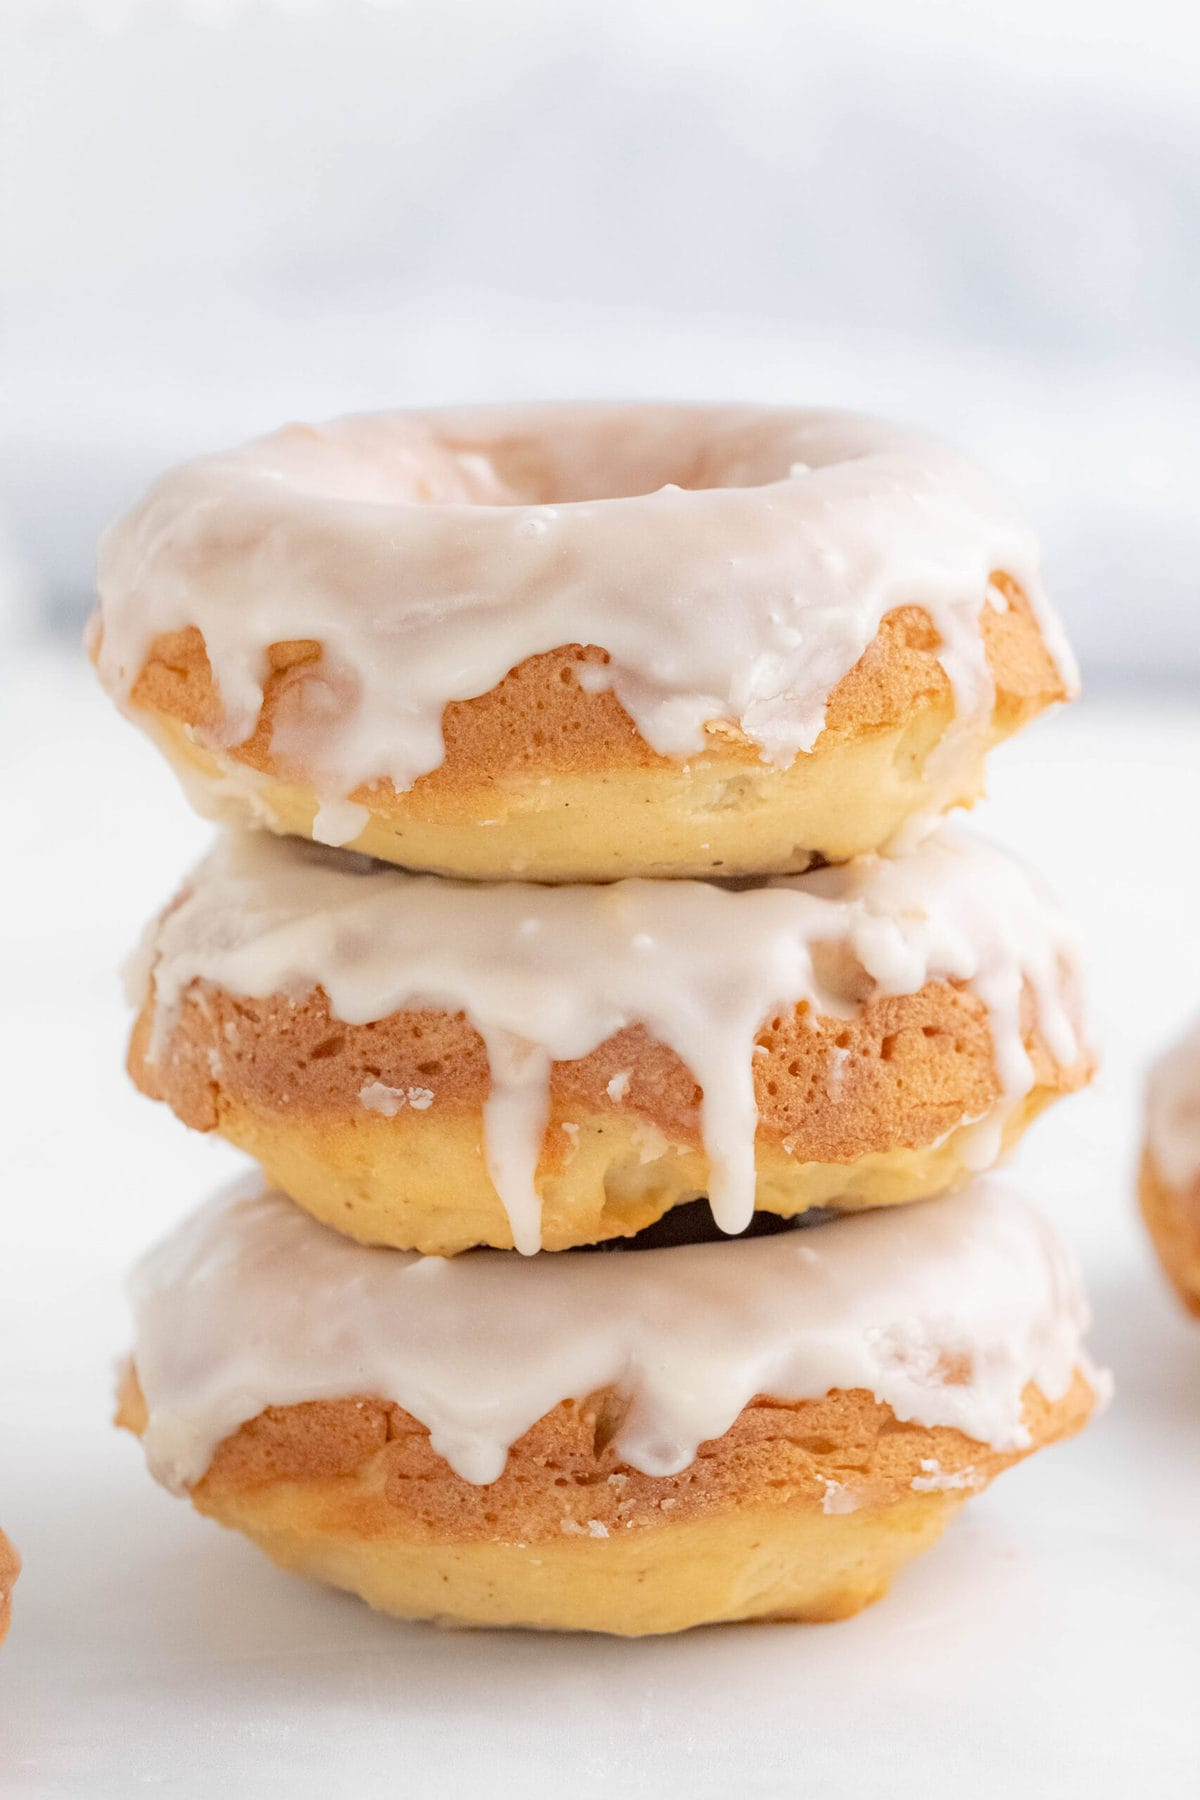 stack of three baked donuts with white glaze dripping down the sides